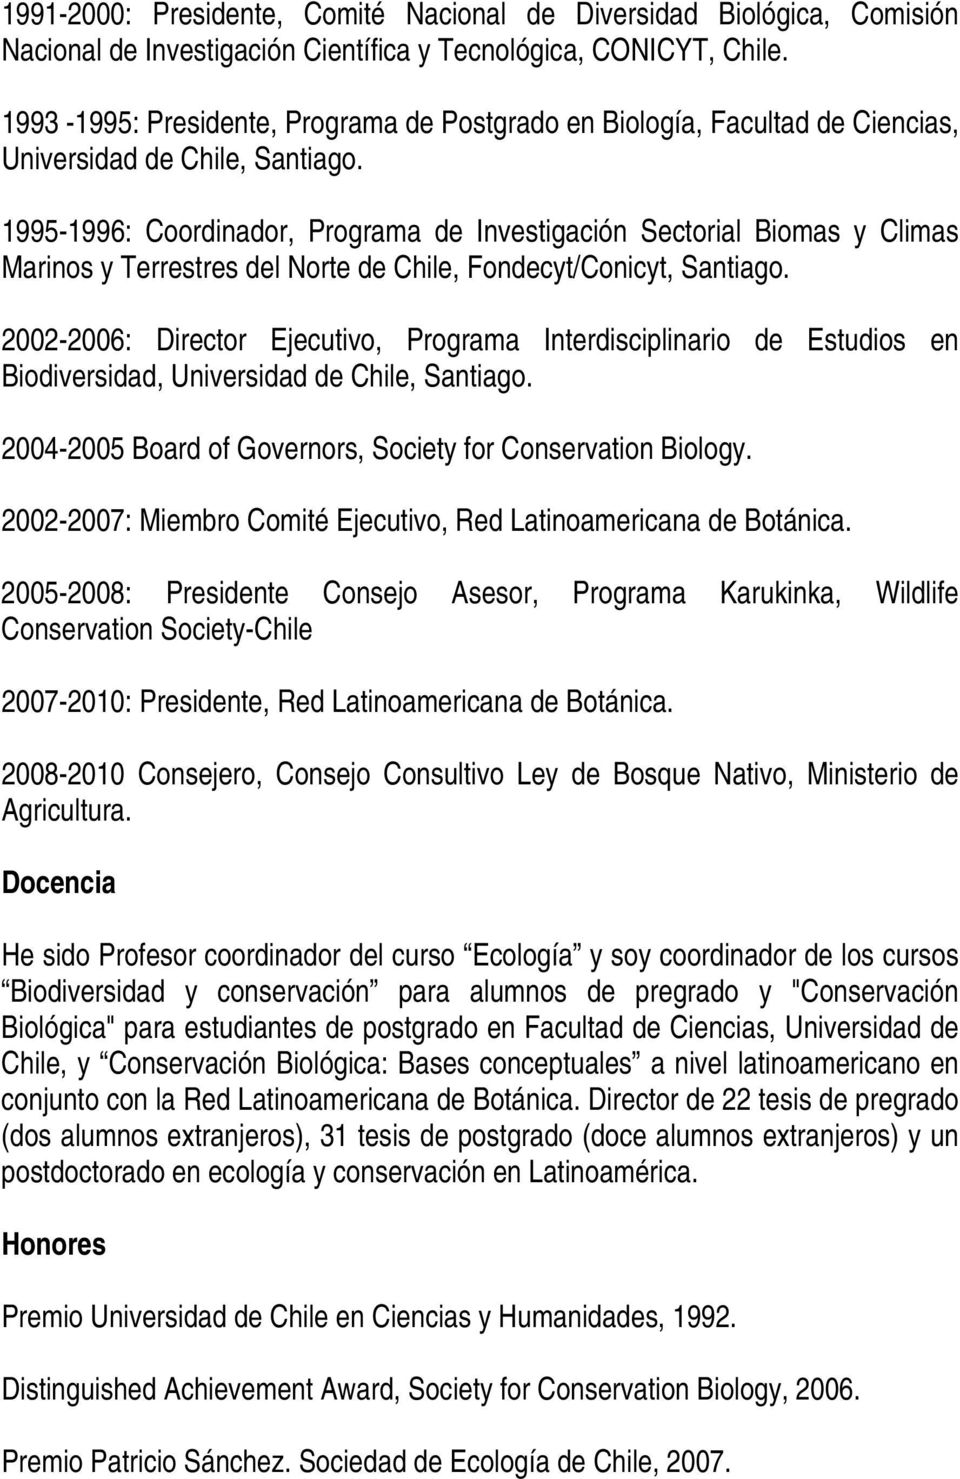 del Norte de Chile, Fondecyt/Conicyt, 2002-2006: Director Ejecutivo, Programa Interdisciplinario de Estudios en Biodiversidad, Universidad de Chile, 2004-2005 Board of Governors, Society for